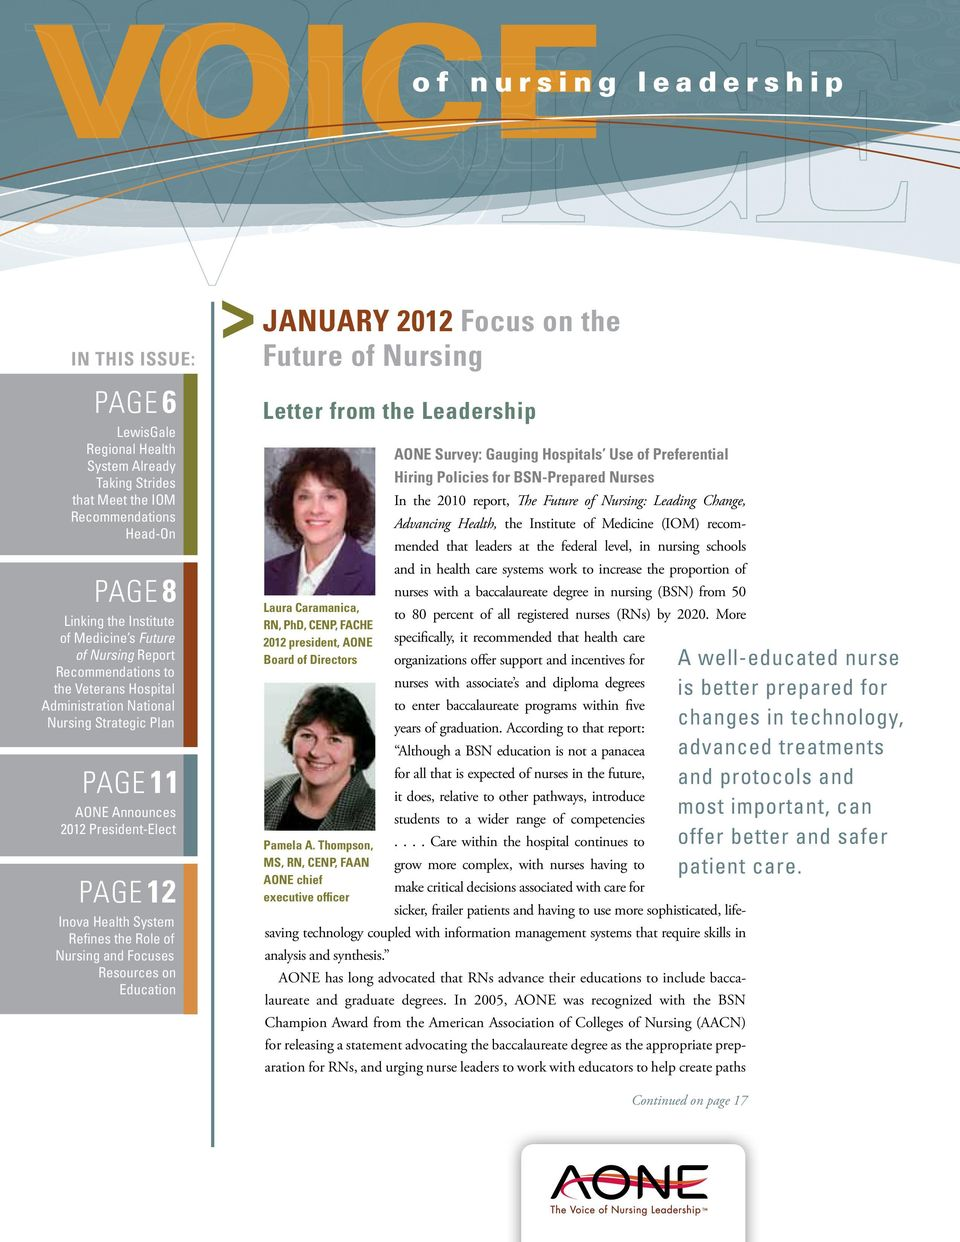 Nursing and Focuses Resources on Education January 2012 Focus on the Future of Nursing Letter from the Leadership AONE Survey: Gauging Hospitals Use of Preferential Hiring Policies for BSN-Prepared